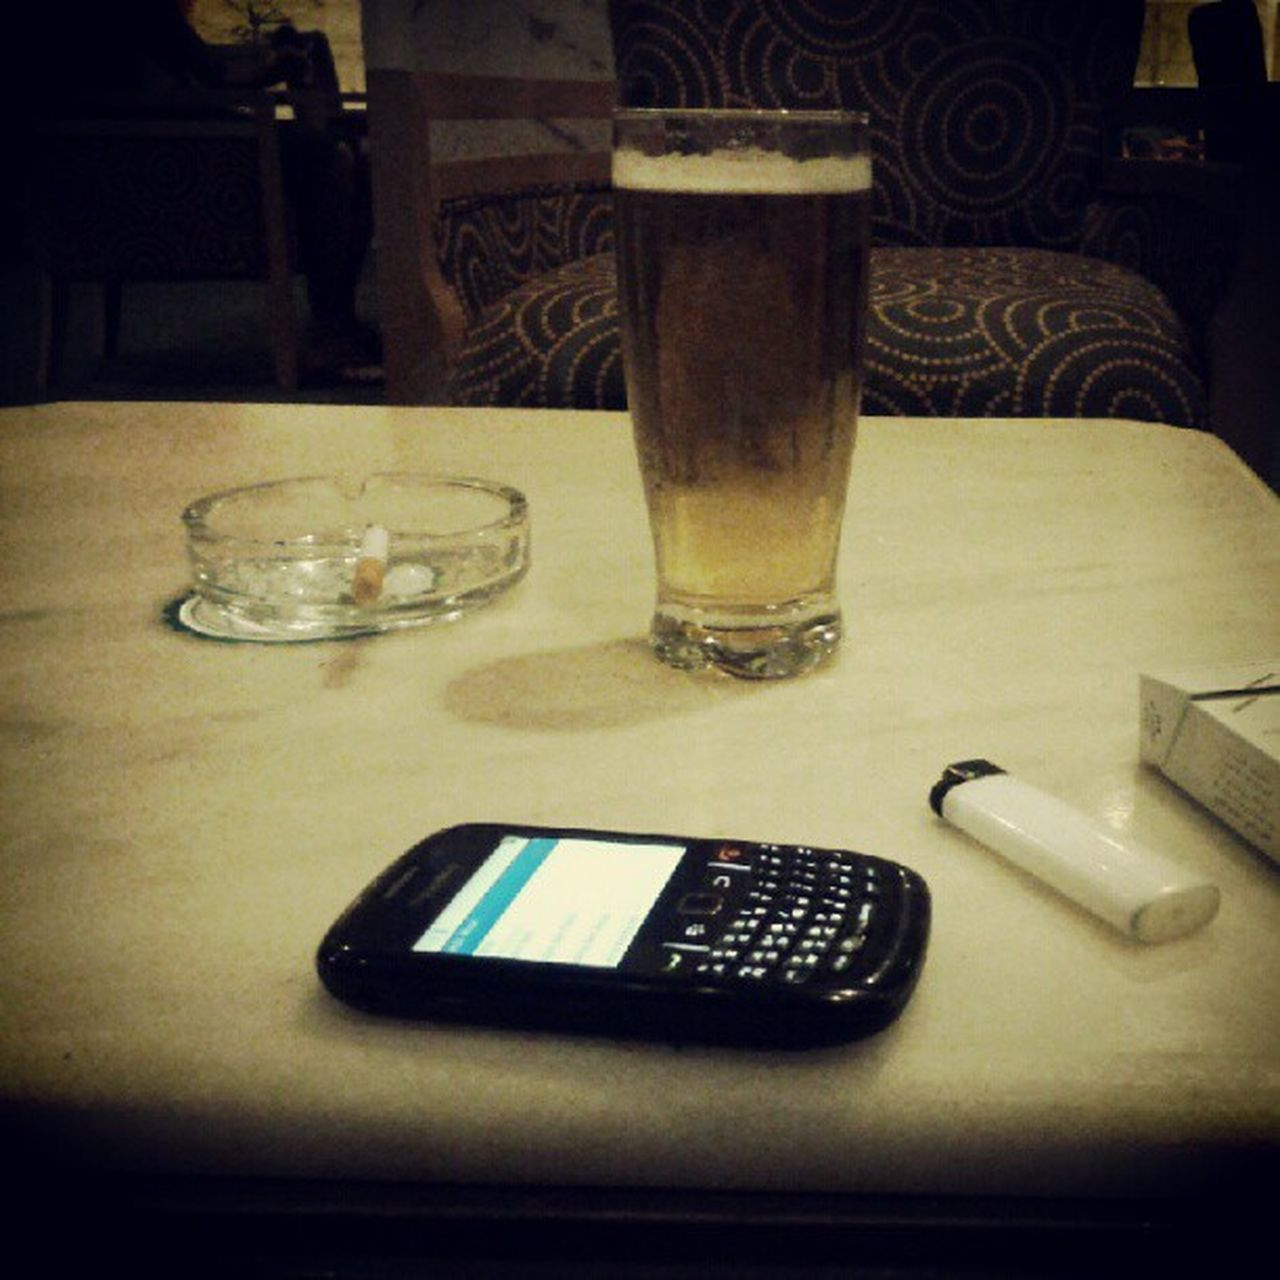 table, indoors, wireless technology, food and drink, drink, drinking glass, refreshment, no people, mobile phone, alcohol, technology, close-up, day